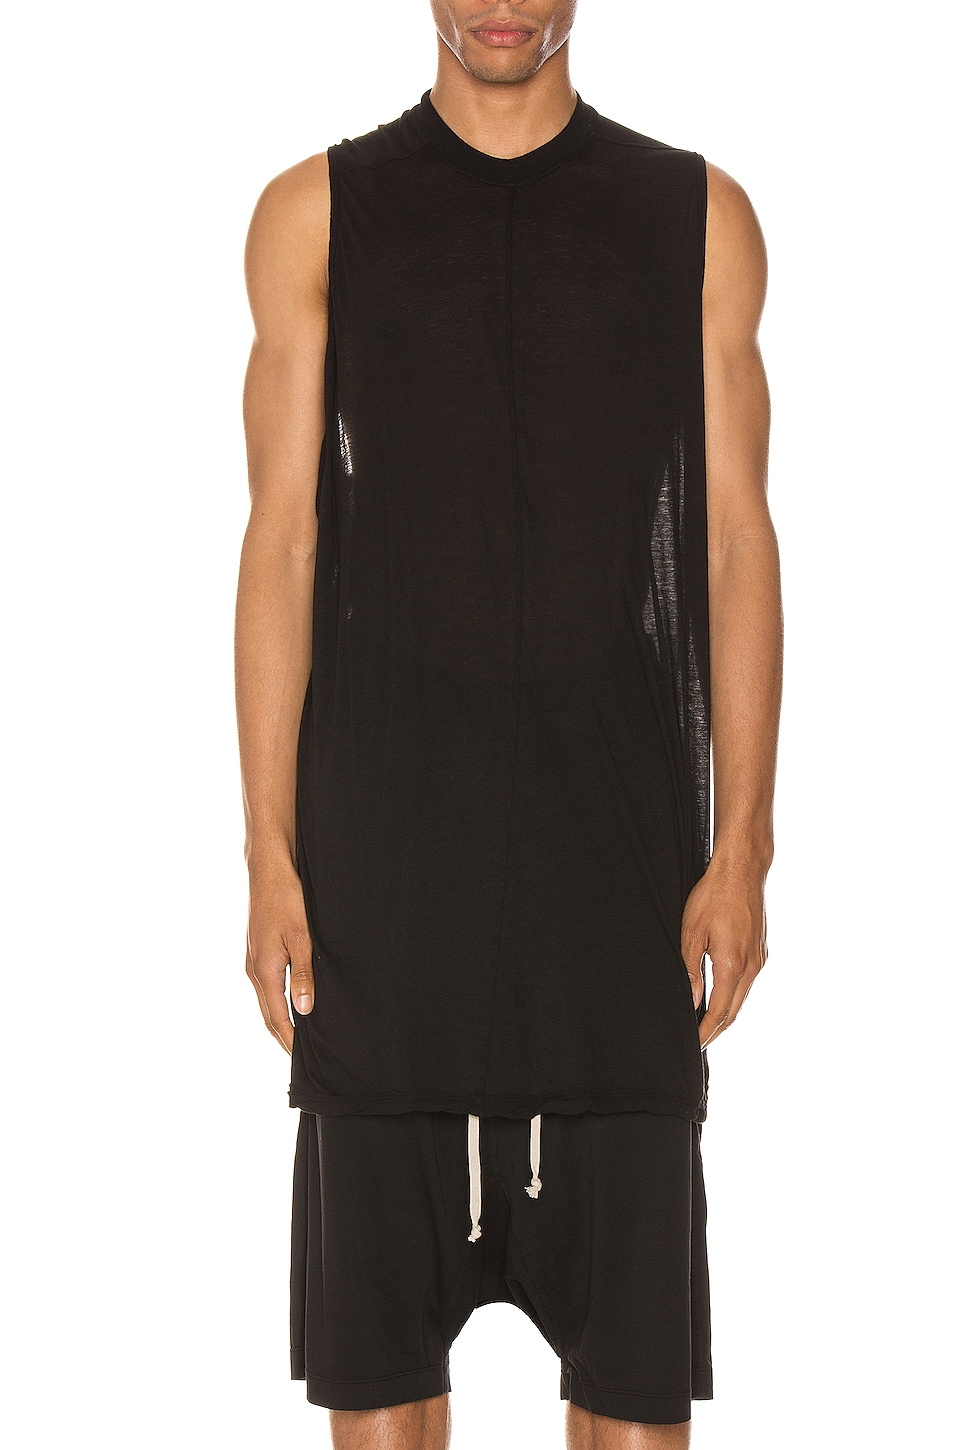 DRKSHDW by Rick Owens Rick's Tank in Black